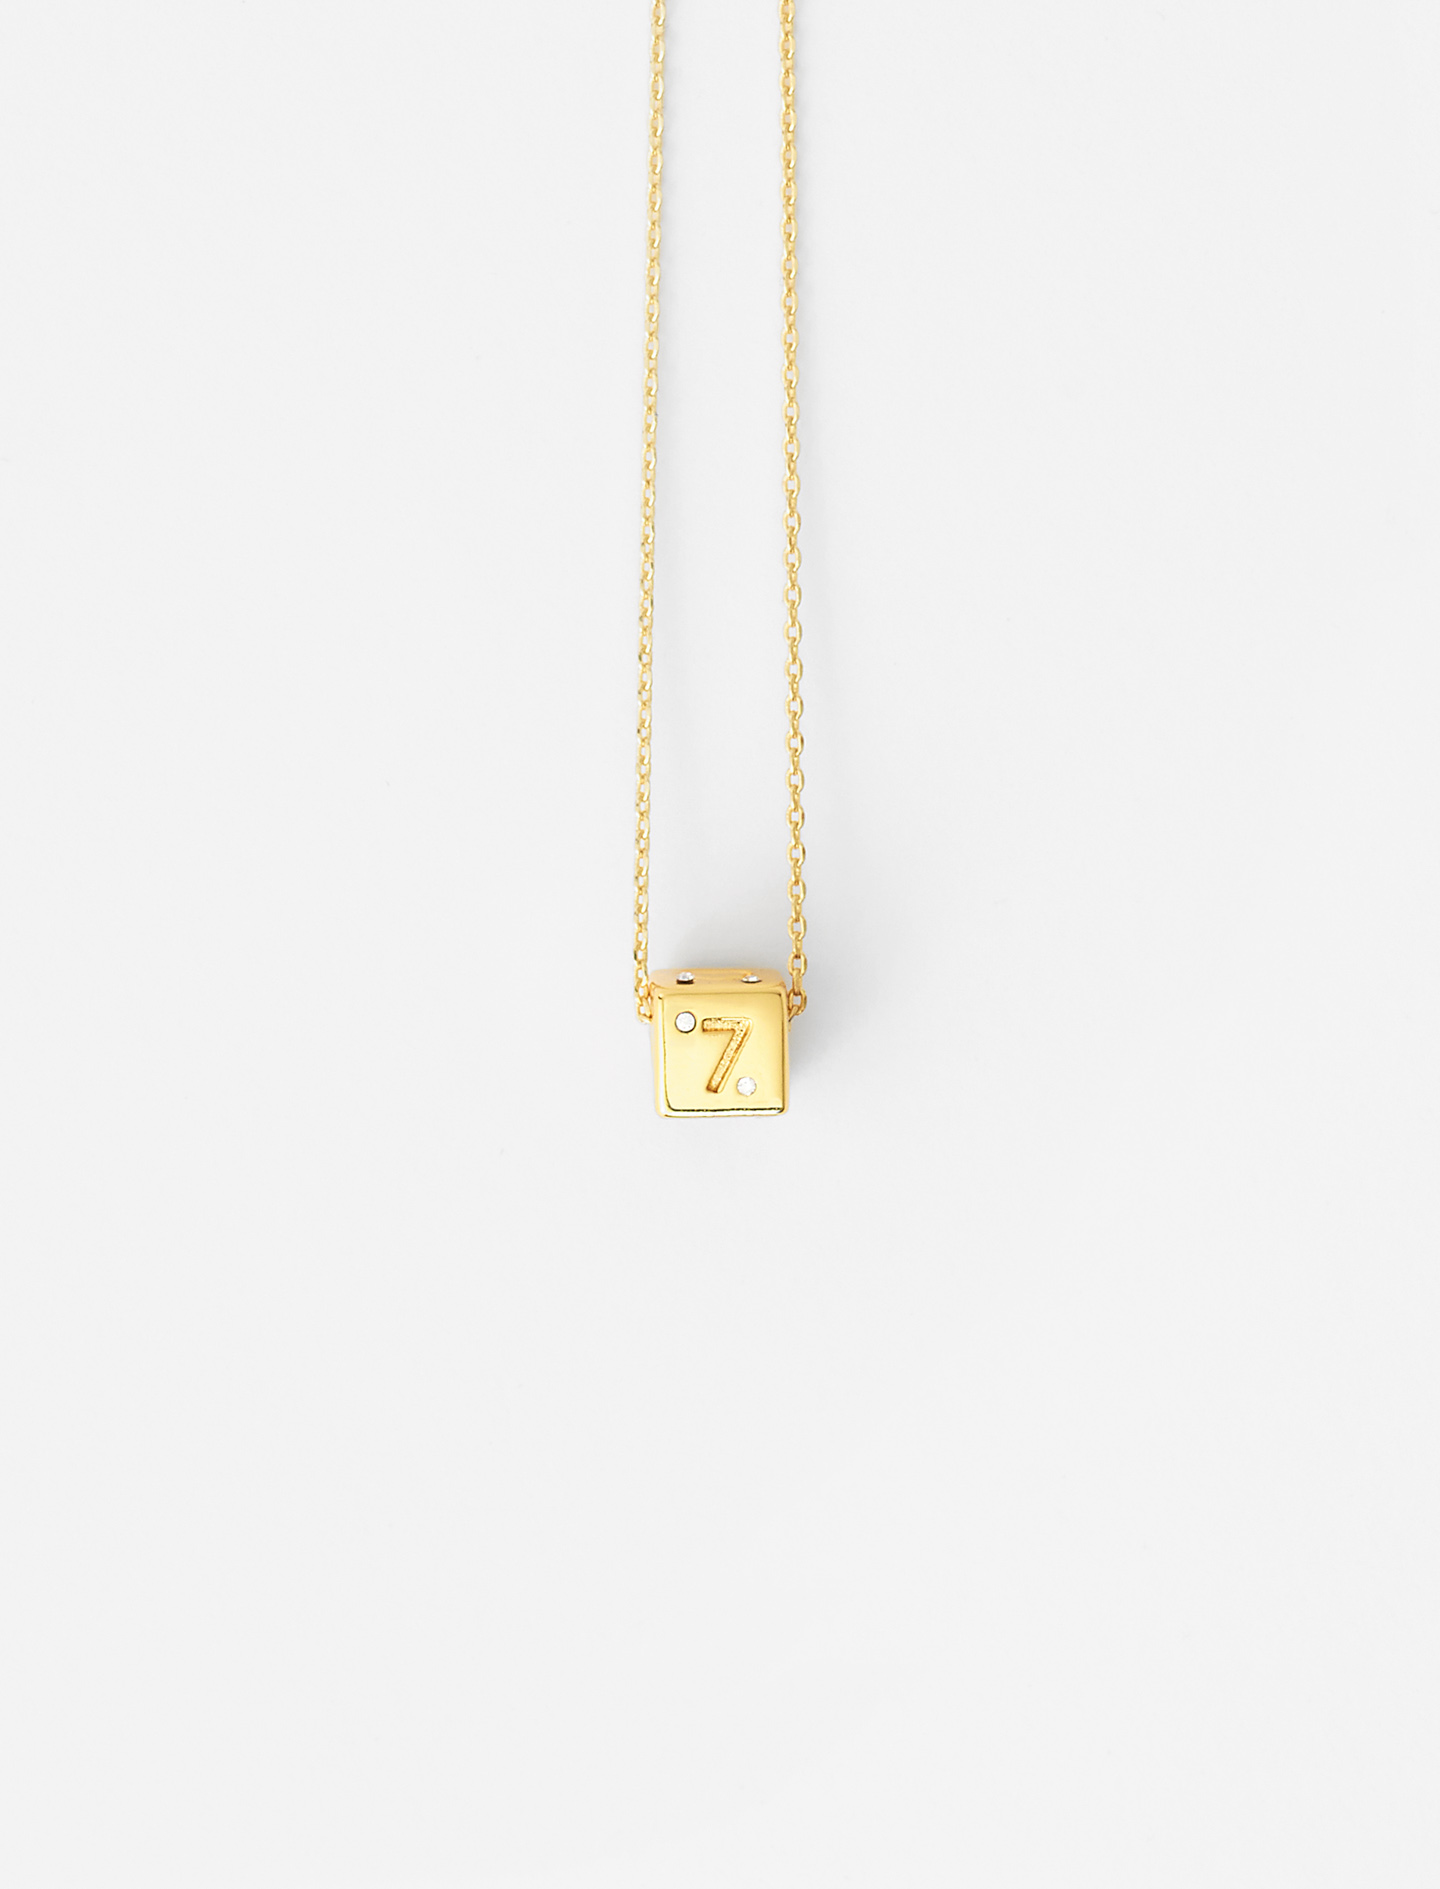 Number 7 dice necklace - Gold